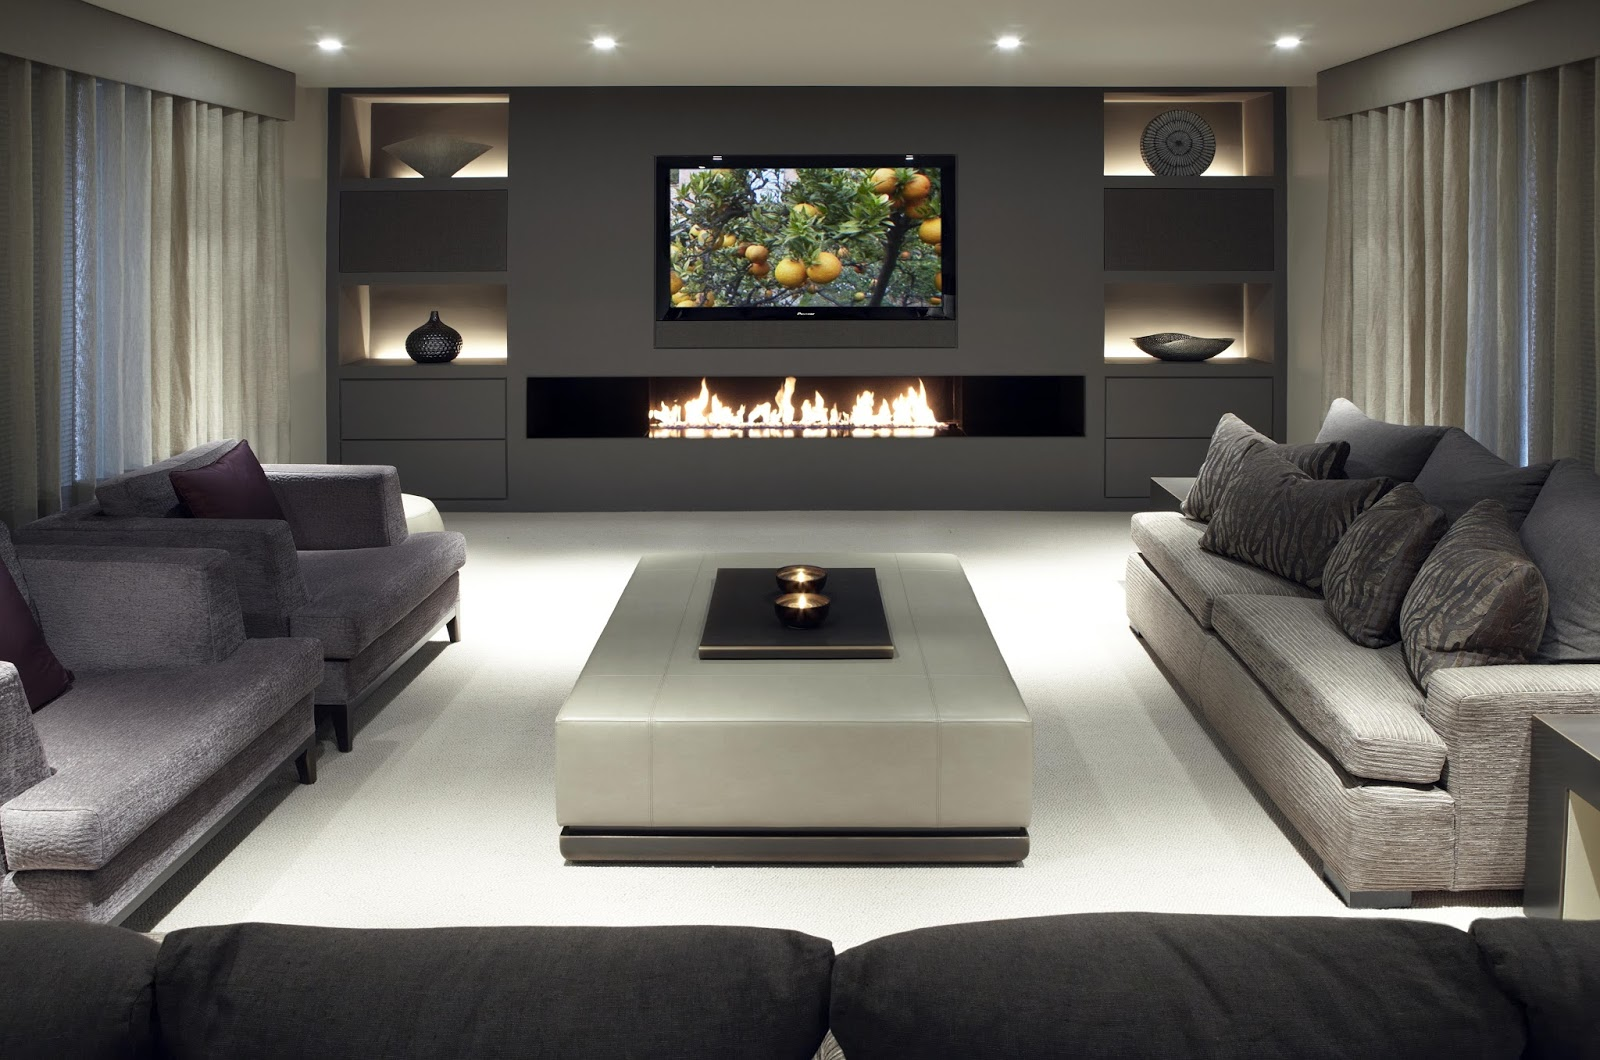 Wonderful Media Room Ideas With Modern Fireplace Under Wall Mounted Tv And Gray Fabric Sectional